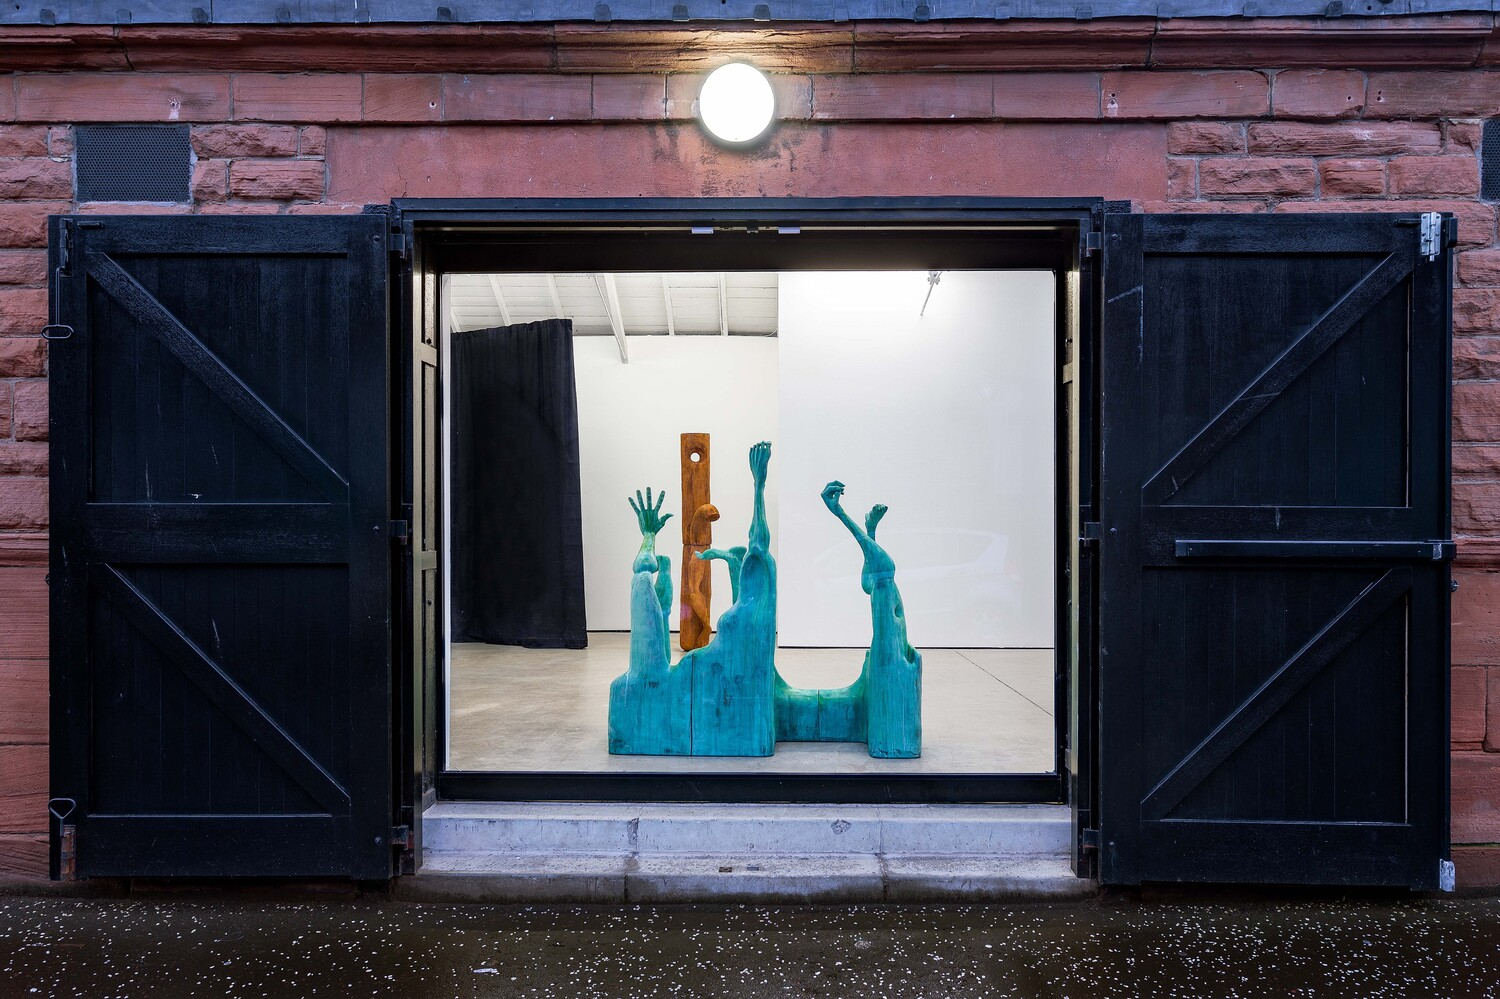 Installation view 'Carve a hole in the rain for yer', The Modern Institute, Osborne Street, Glasgow, 2021